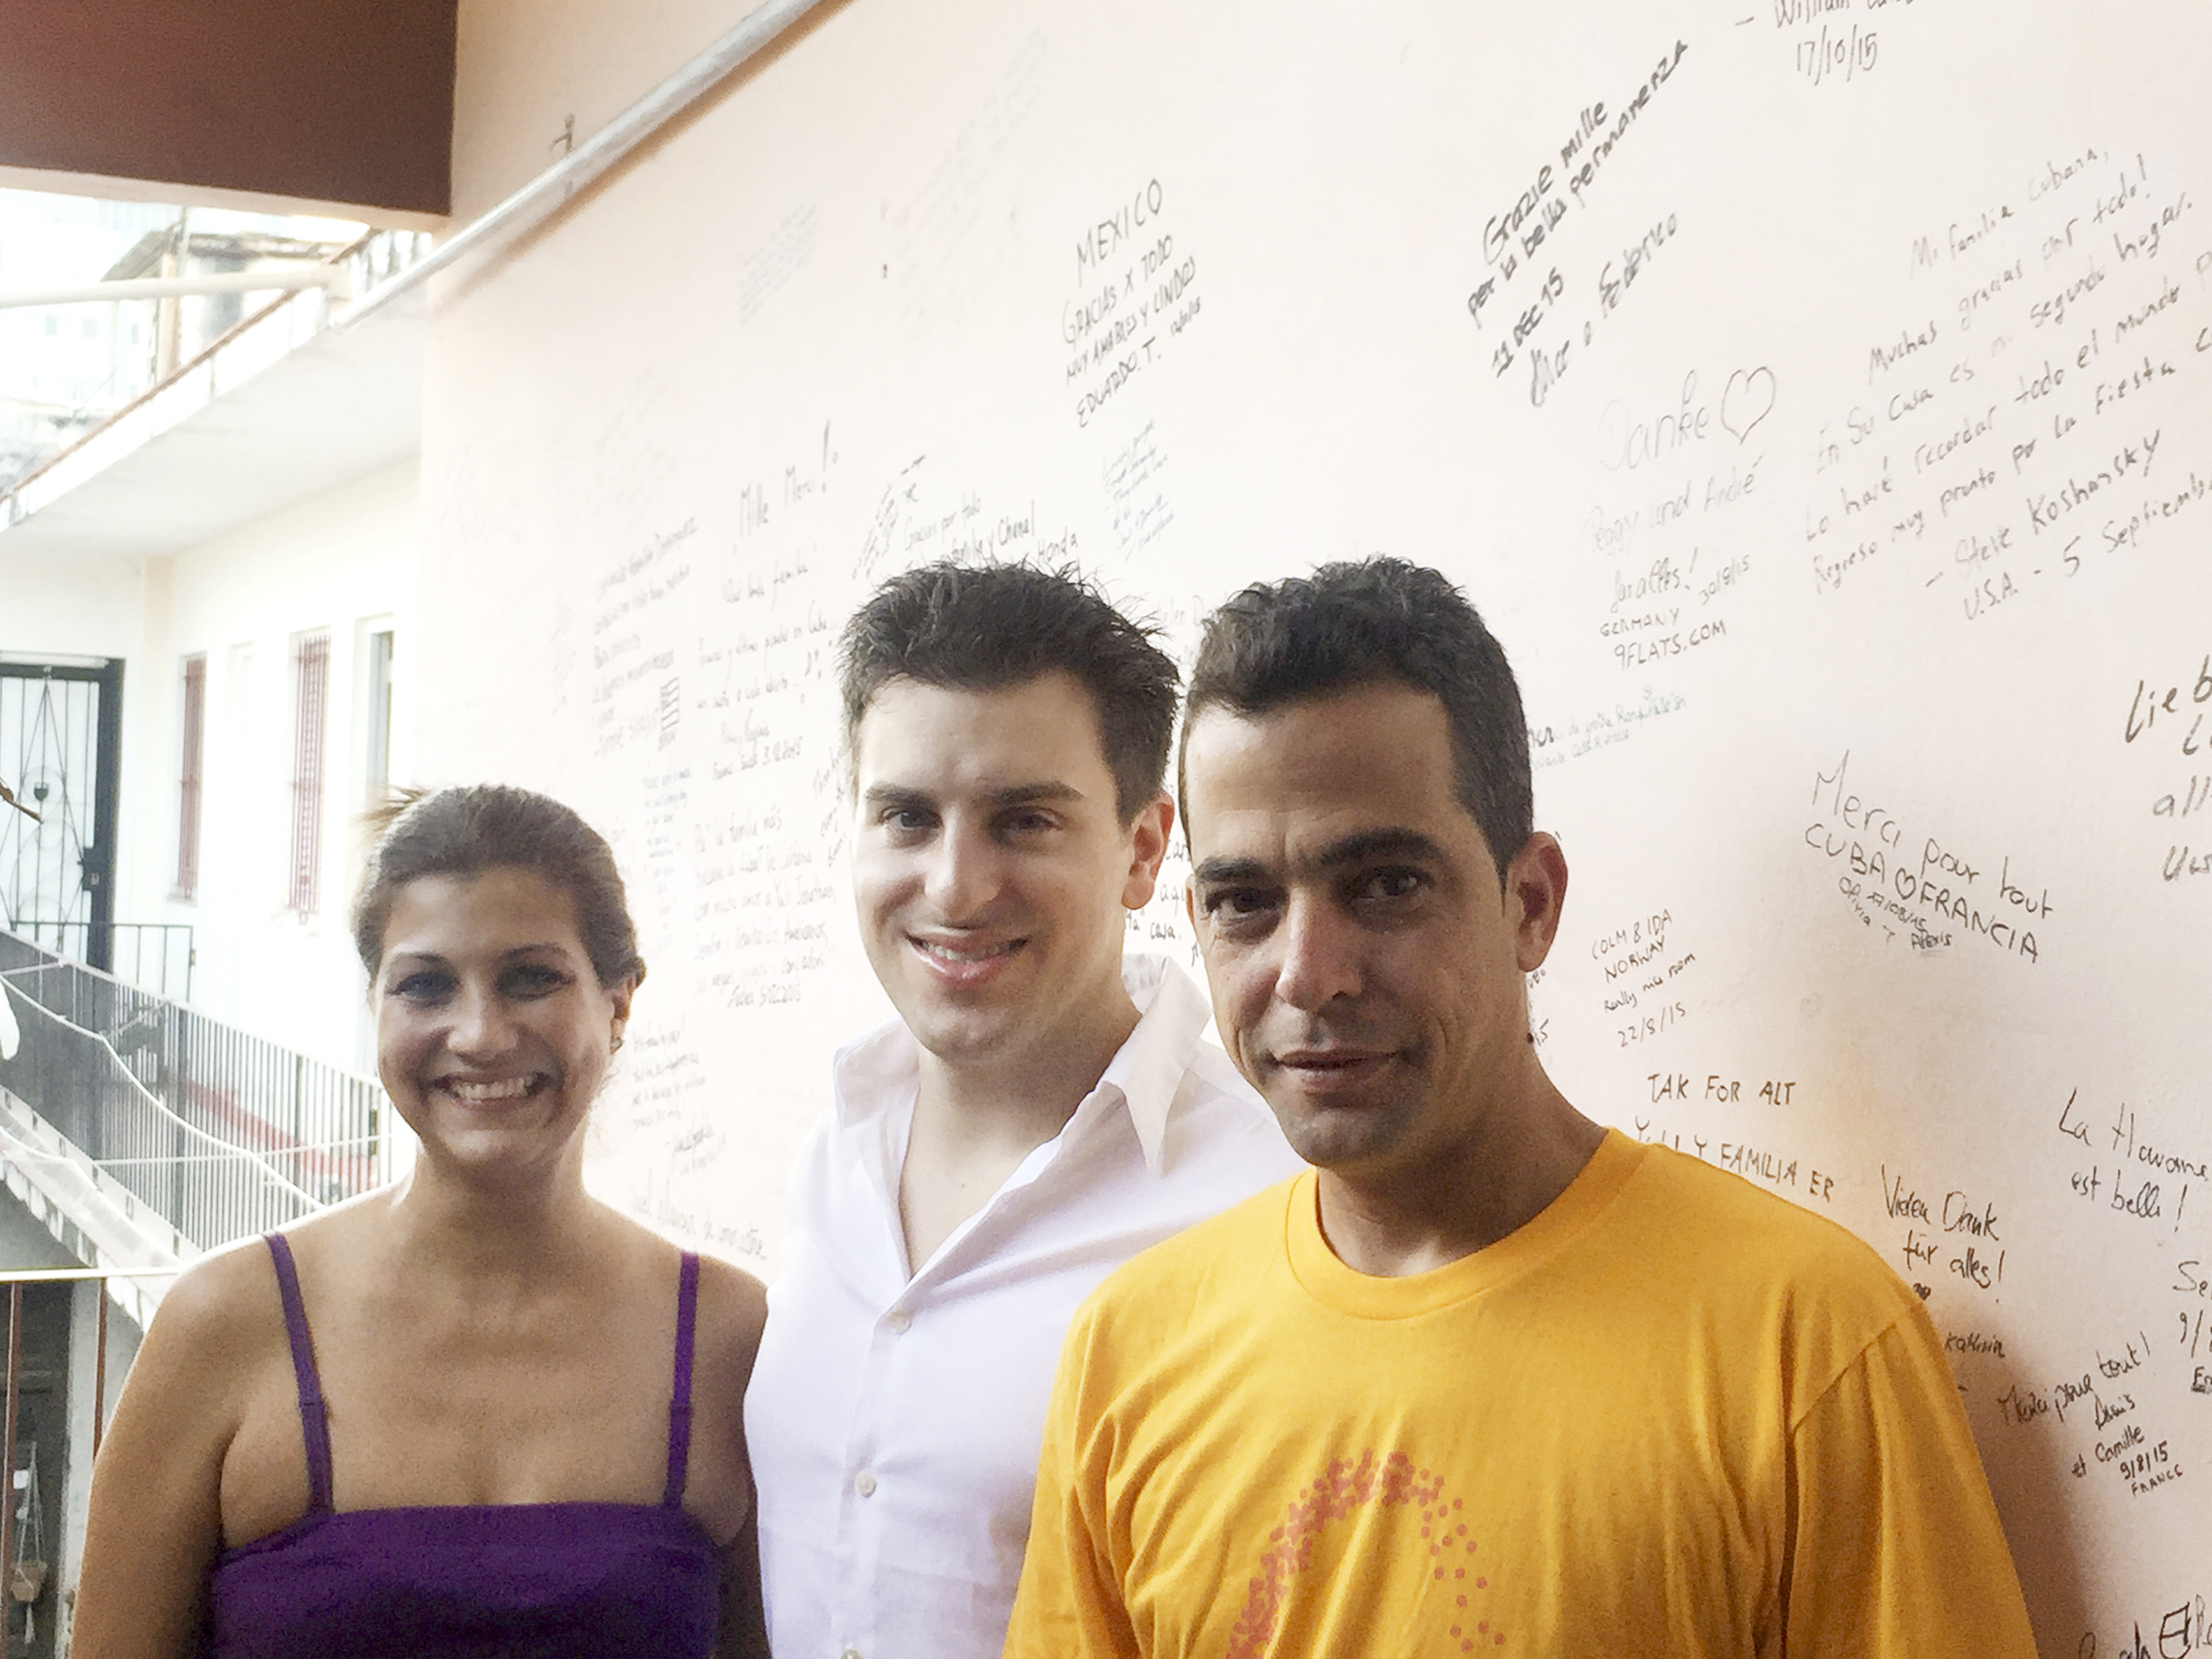 Airbnb CEO Brian Chesky (center) with a Havana host couple, in front of a wall festooned with signed notes from their Airbnb guests.